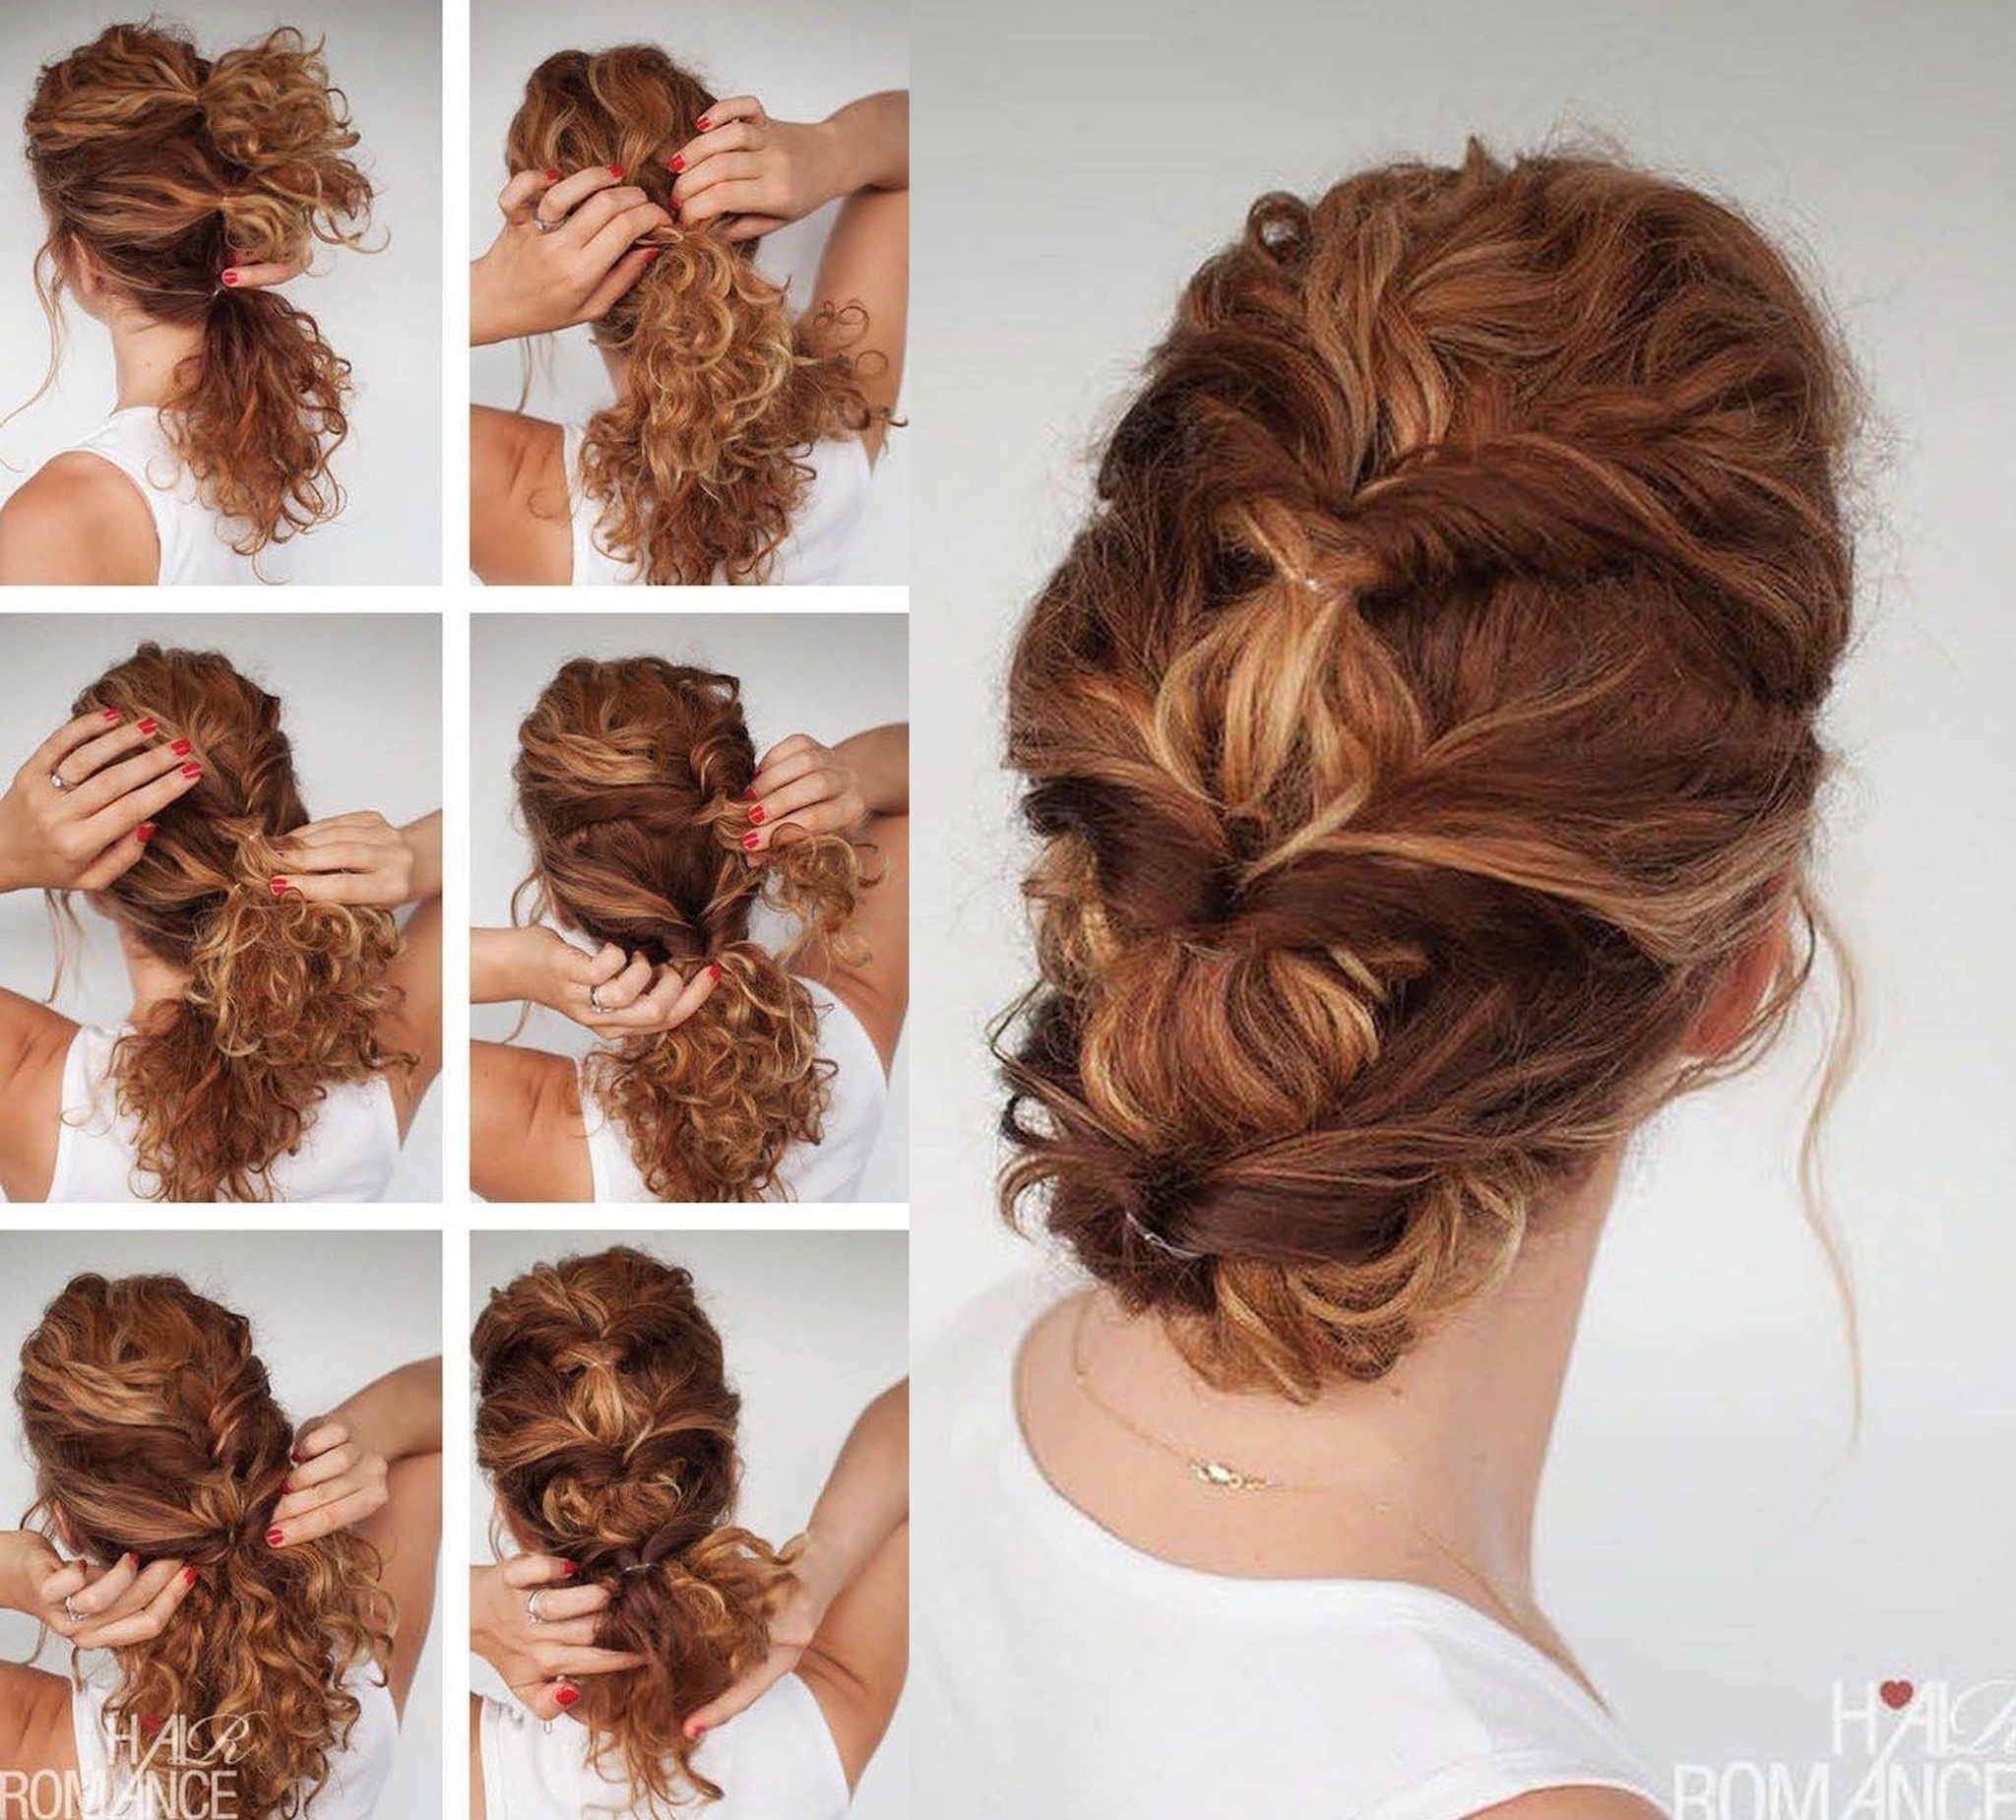 7 Easy Hairstyle Tutorials For Curly Hair